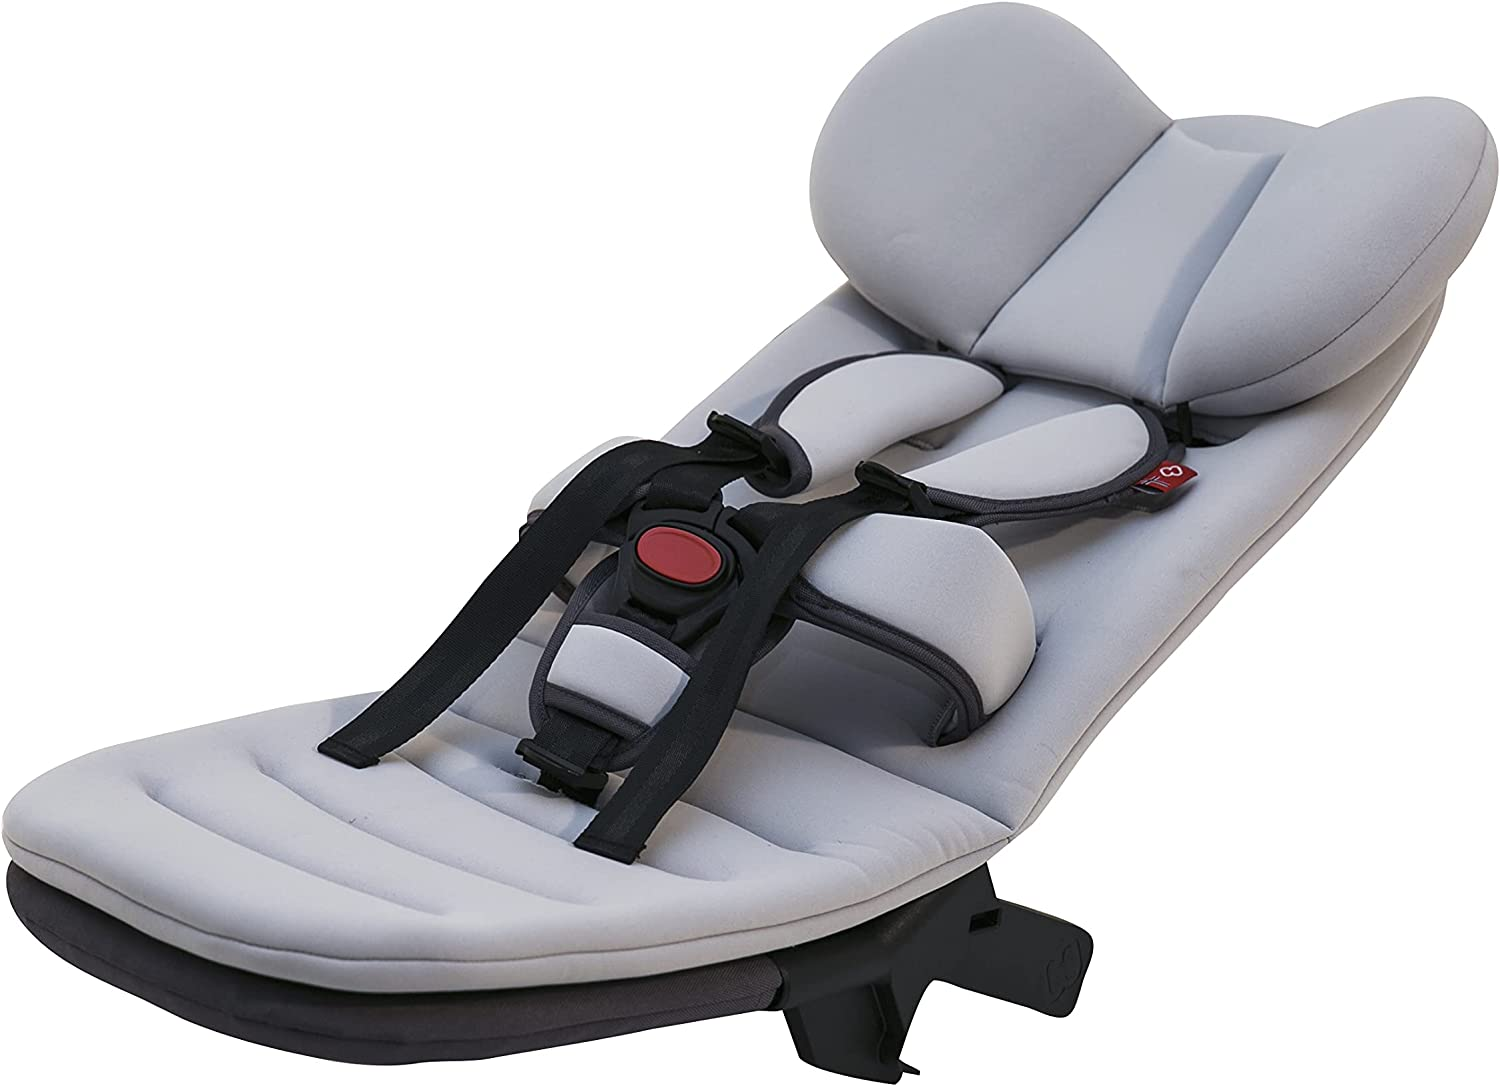 Hamax Unisex-Youth Outback Trailer Baby Insert Spare, Multicoloured, One Size